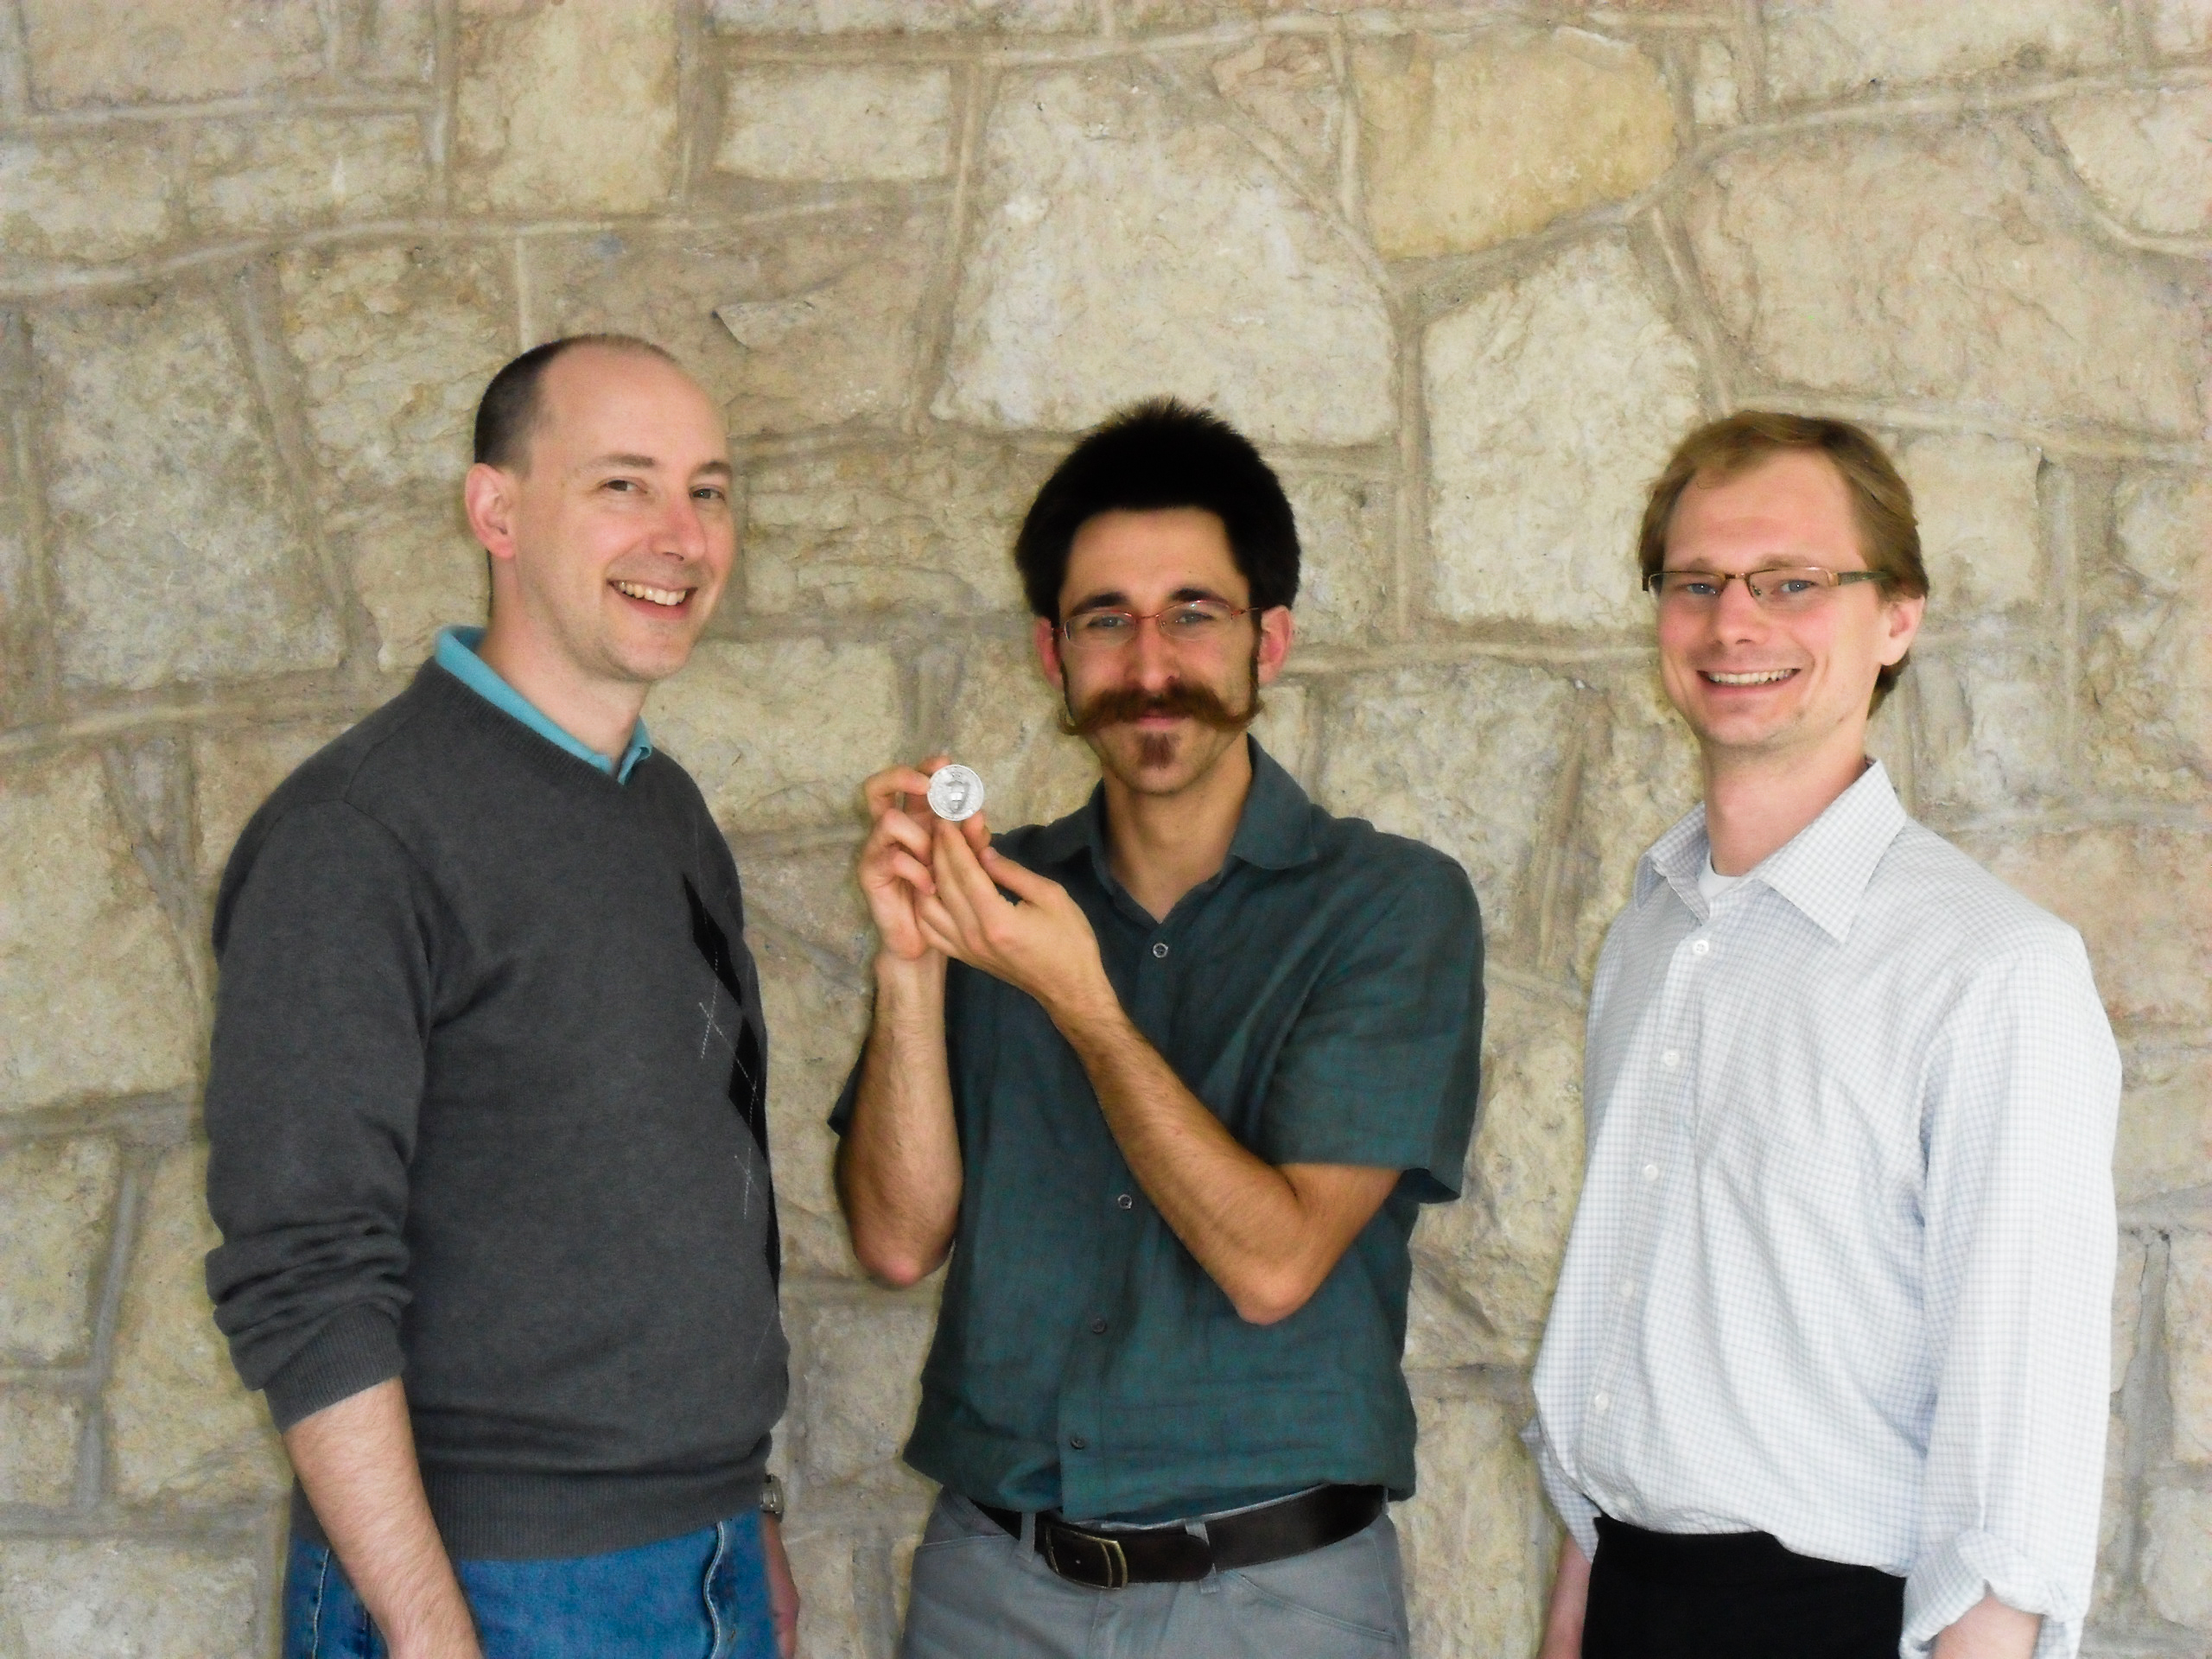 thesis usask Links to articles that have tips to help graduate students who want to improve their reading, whether it be speed, comprehension, or depth graduate-level writing links to the writing help page on graduate level writing and contains information on thesis/dissertation writing and formatting, grant writing, writing groups, and.